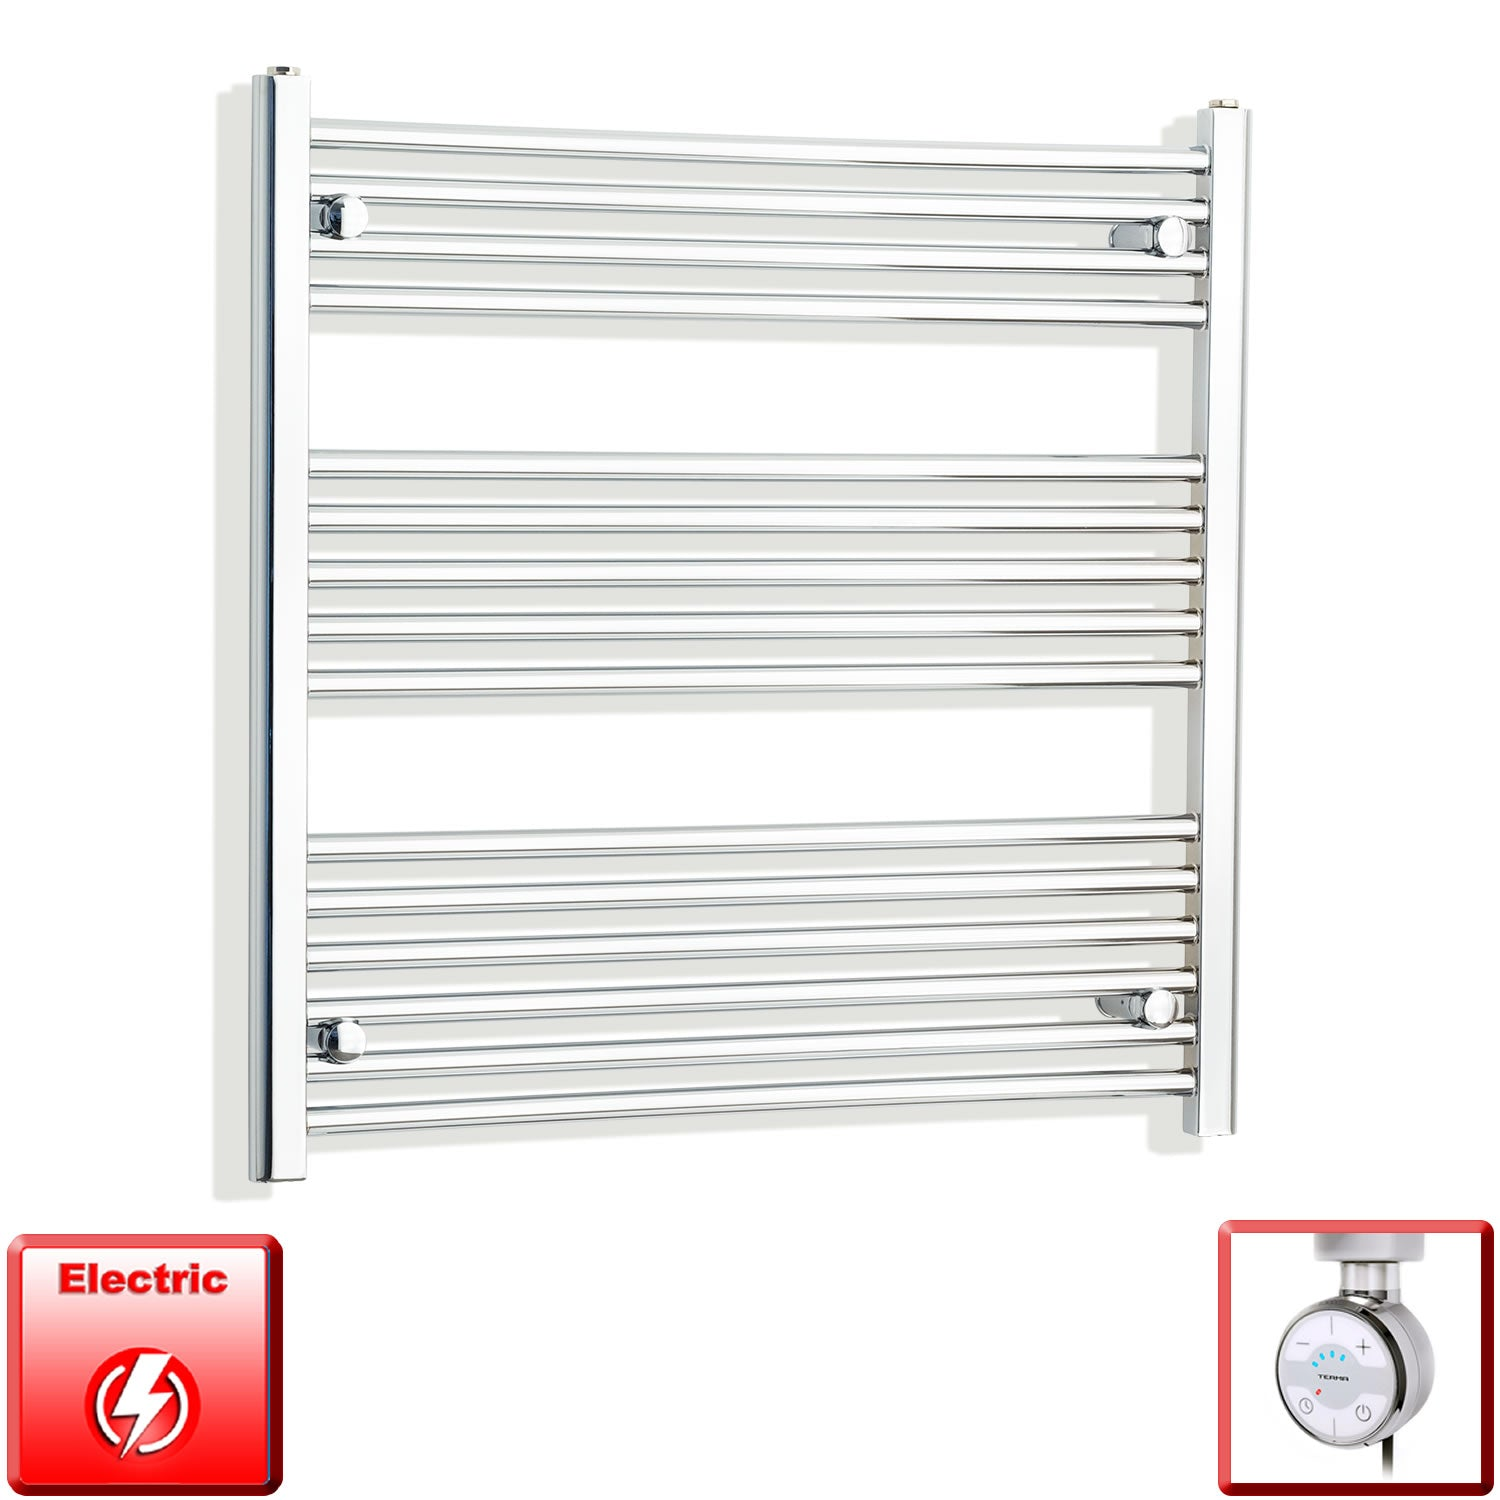 800mm Wide 800mm High Pre-Filled Chrome Electric Towel Rail Radiator With Thermostatic MOA Element